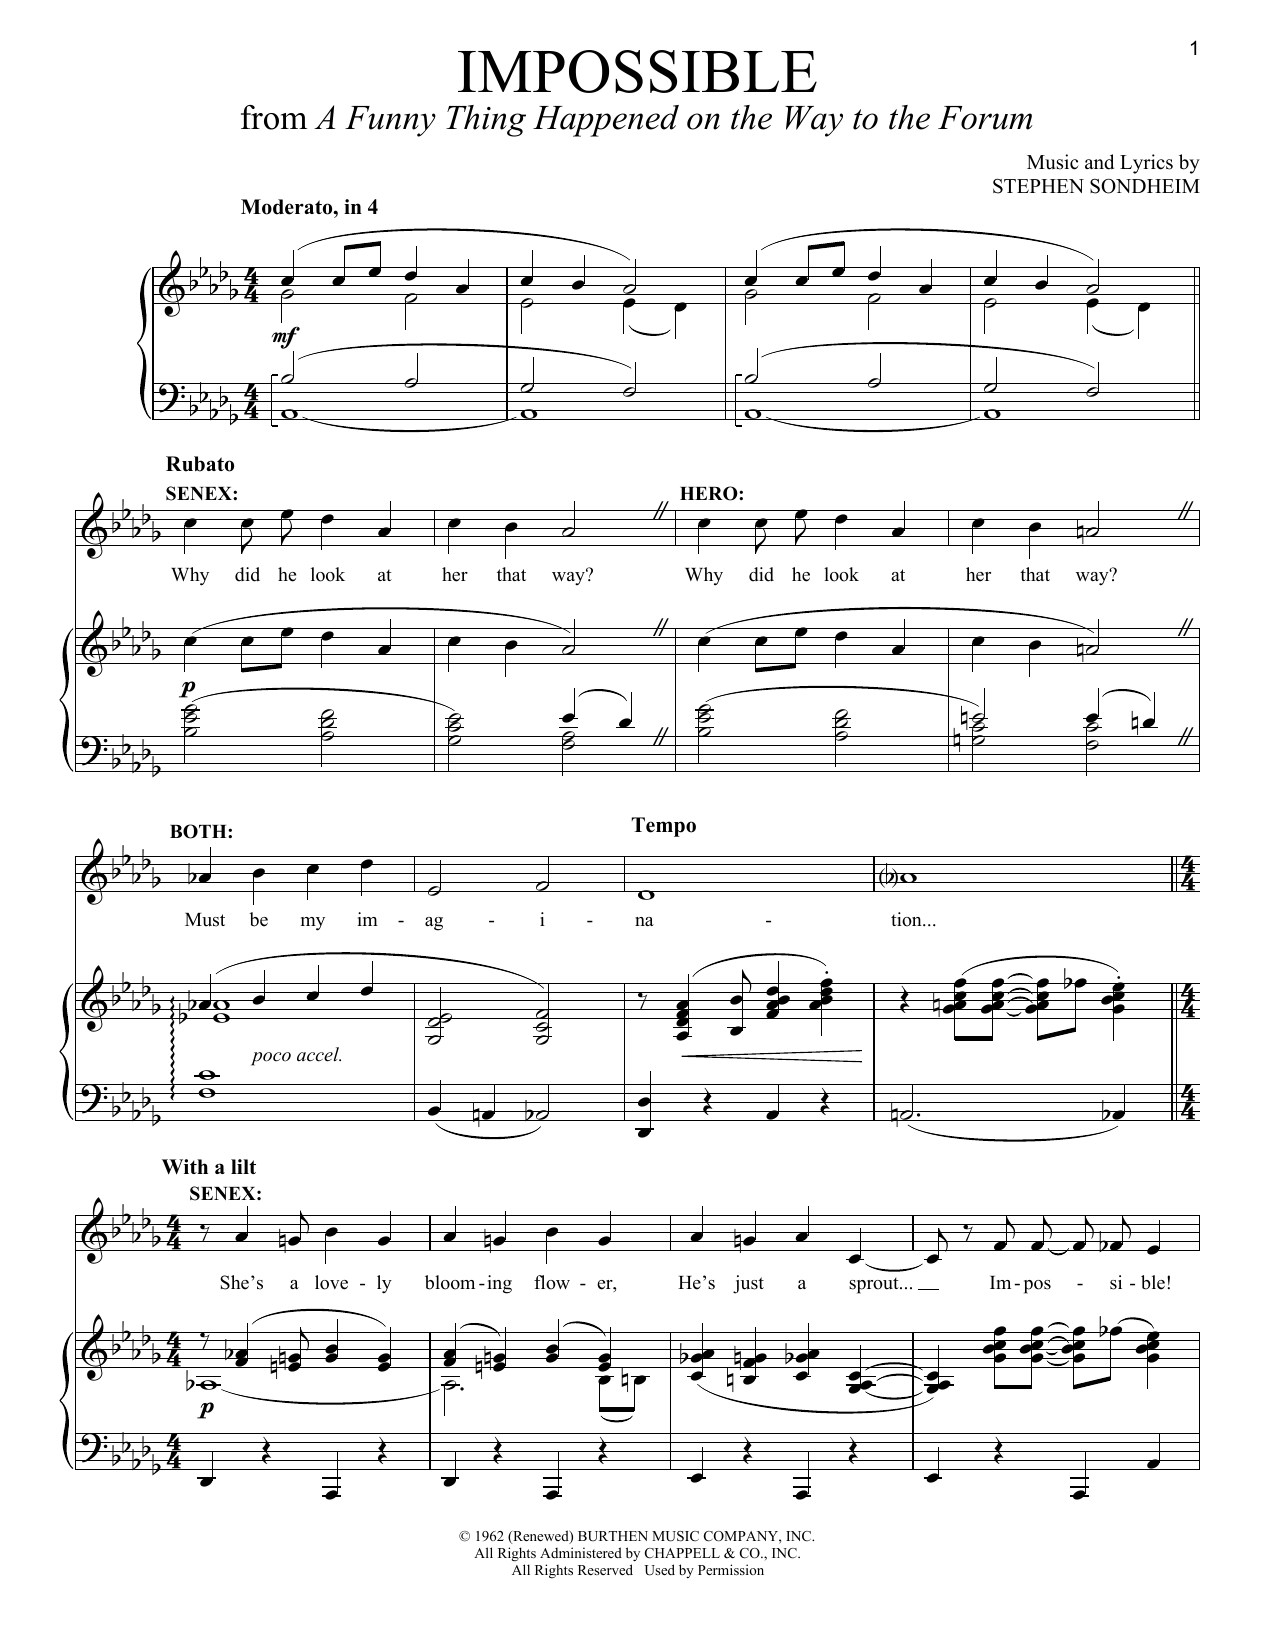 Stephen Sondheim Impossible sheet music notes and chords. Download Printable PDF.